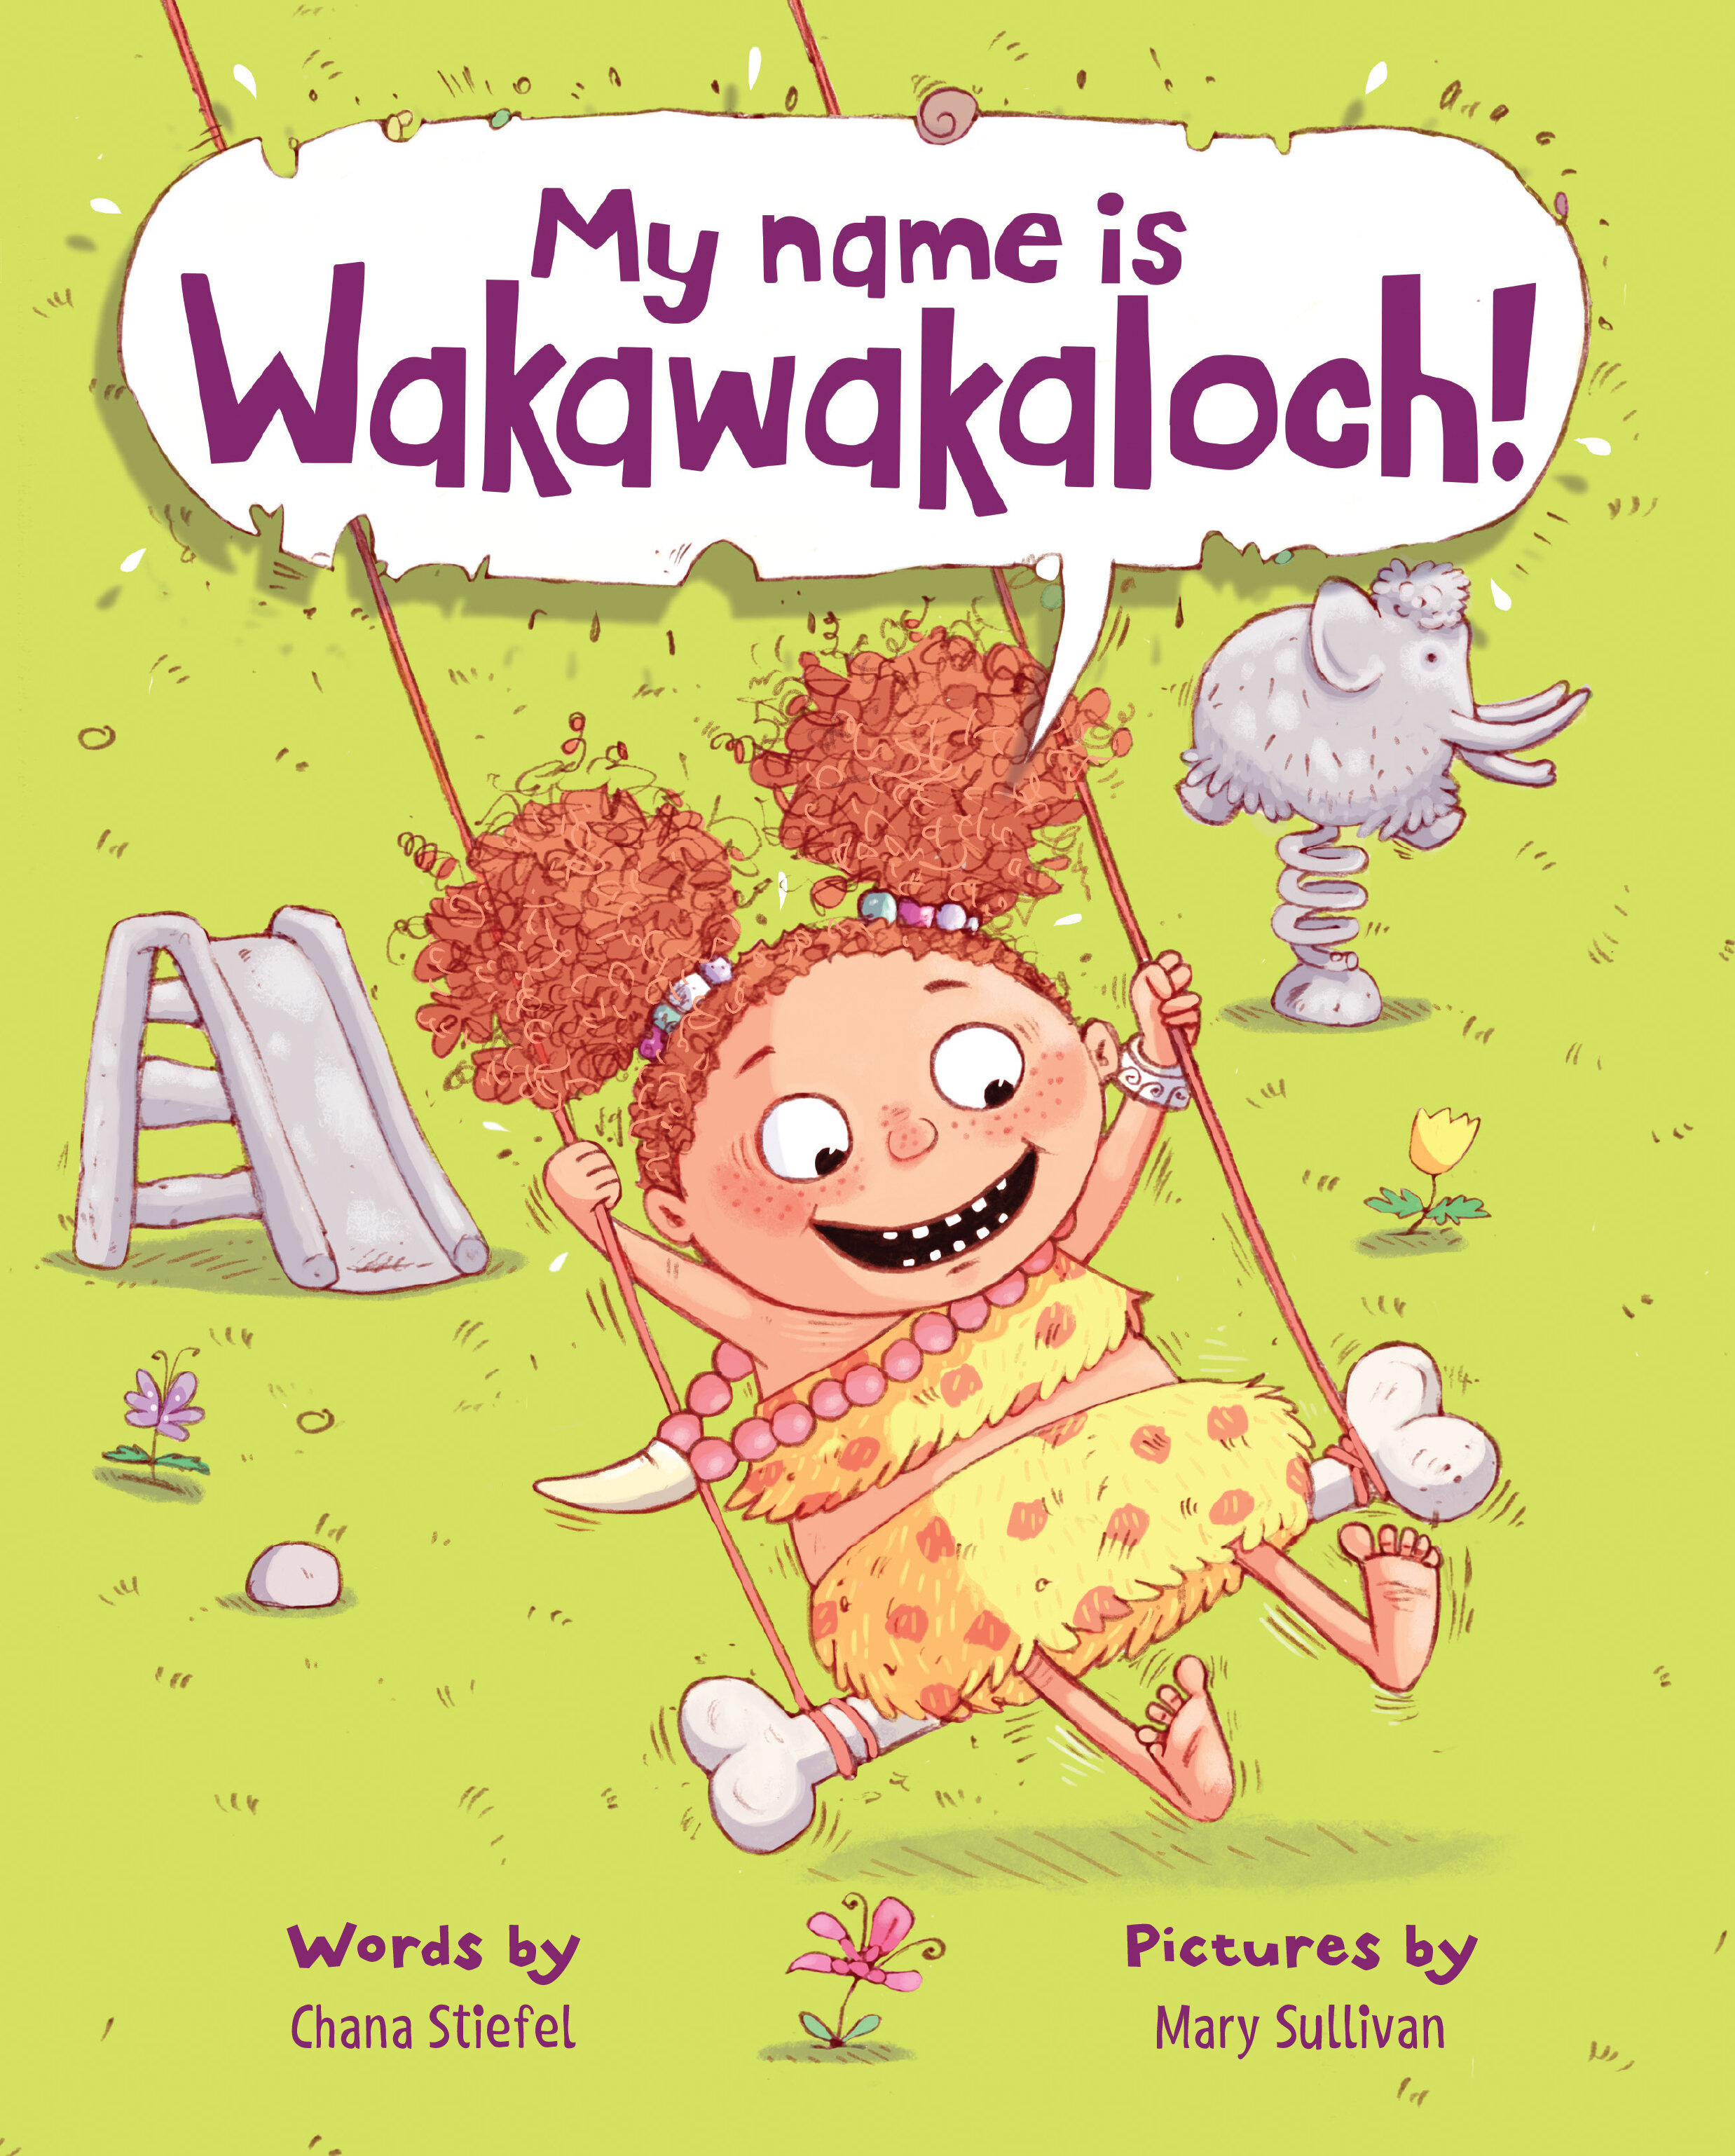 My Name is Wakawakaloch! by Chana Stiefel, illustrations by Mary Sullivan (HMH Books for Young Readers)